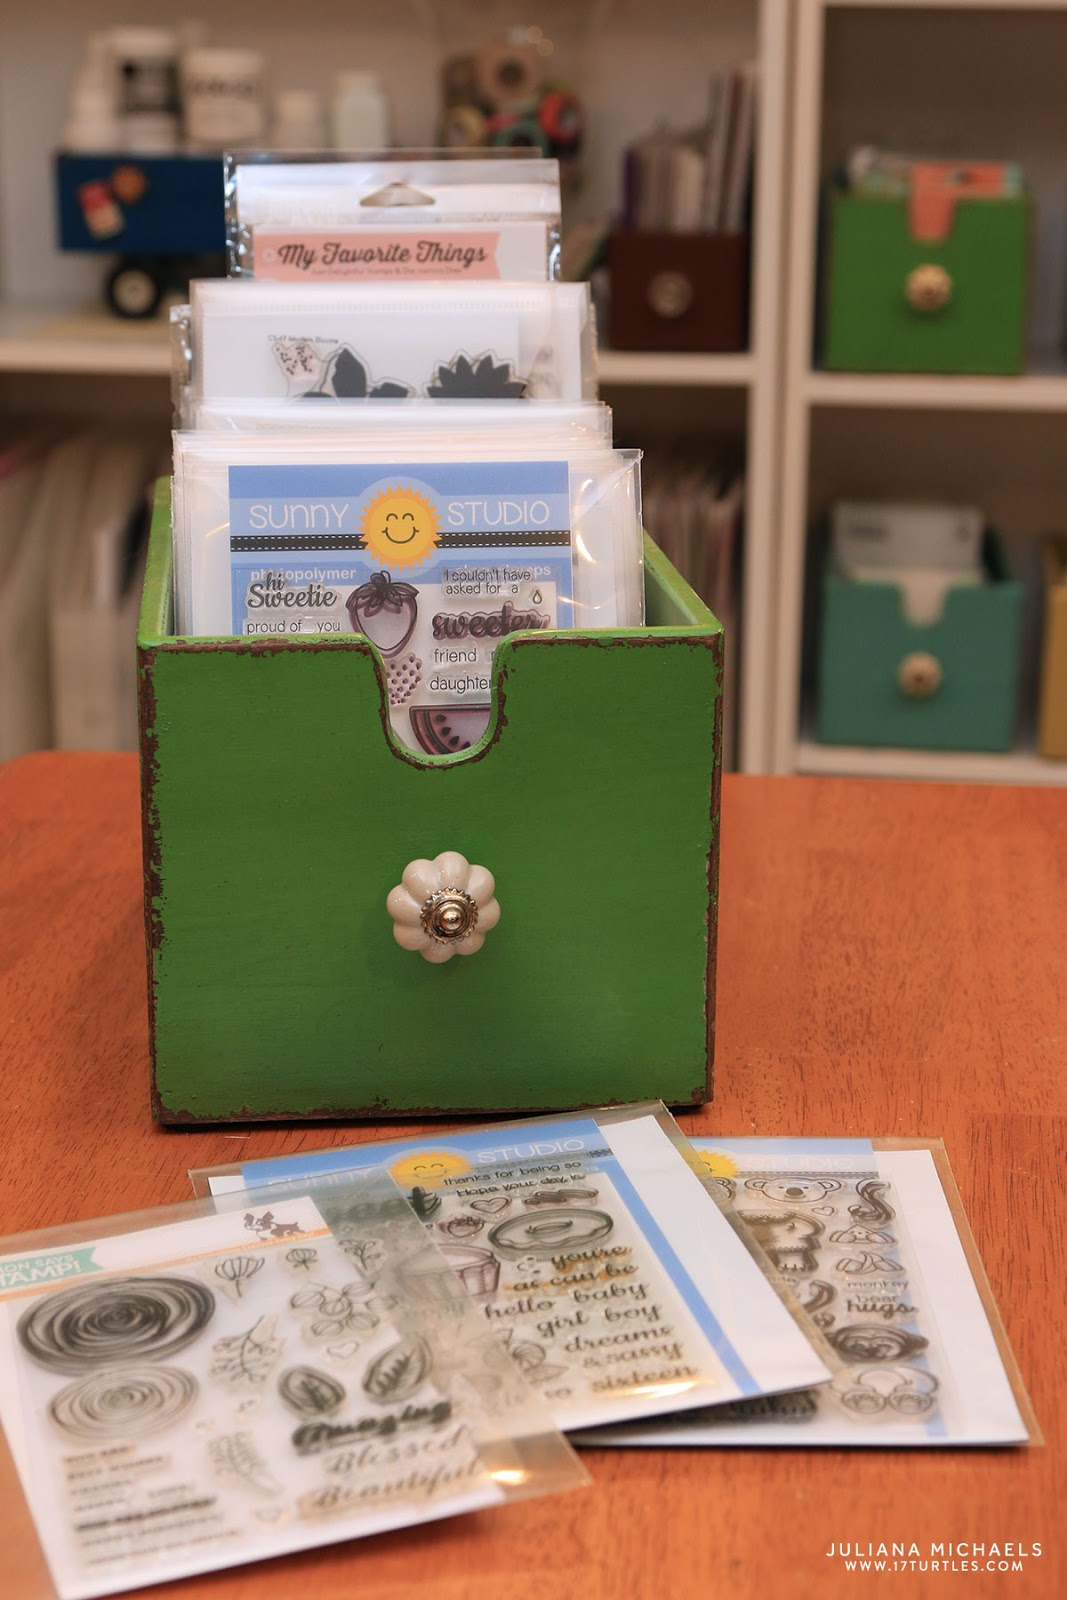 Card Making Storage Ideas Part - 19: Scrapbook And Card Making Storage Ideas - Juliana Michaels Of 17turtles  Shares Her Creative Space And